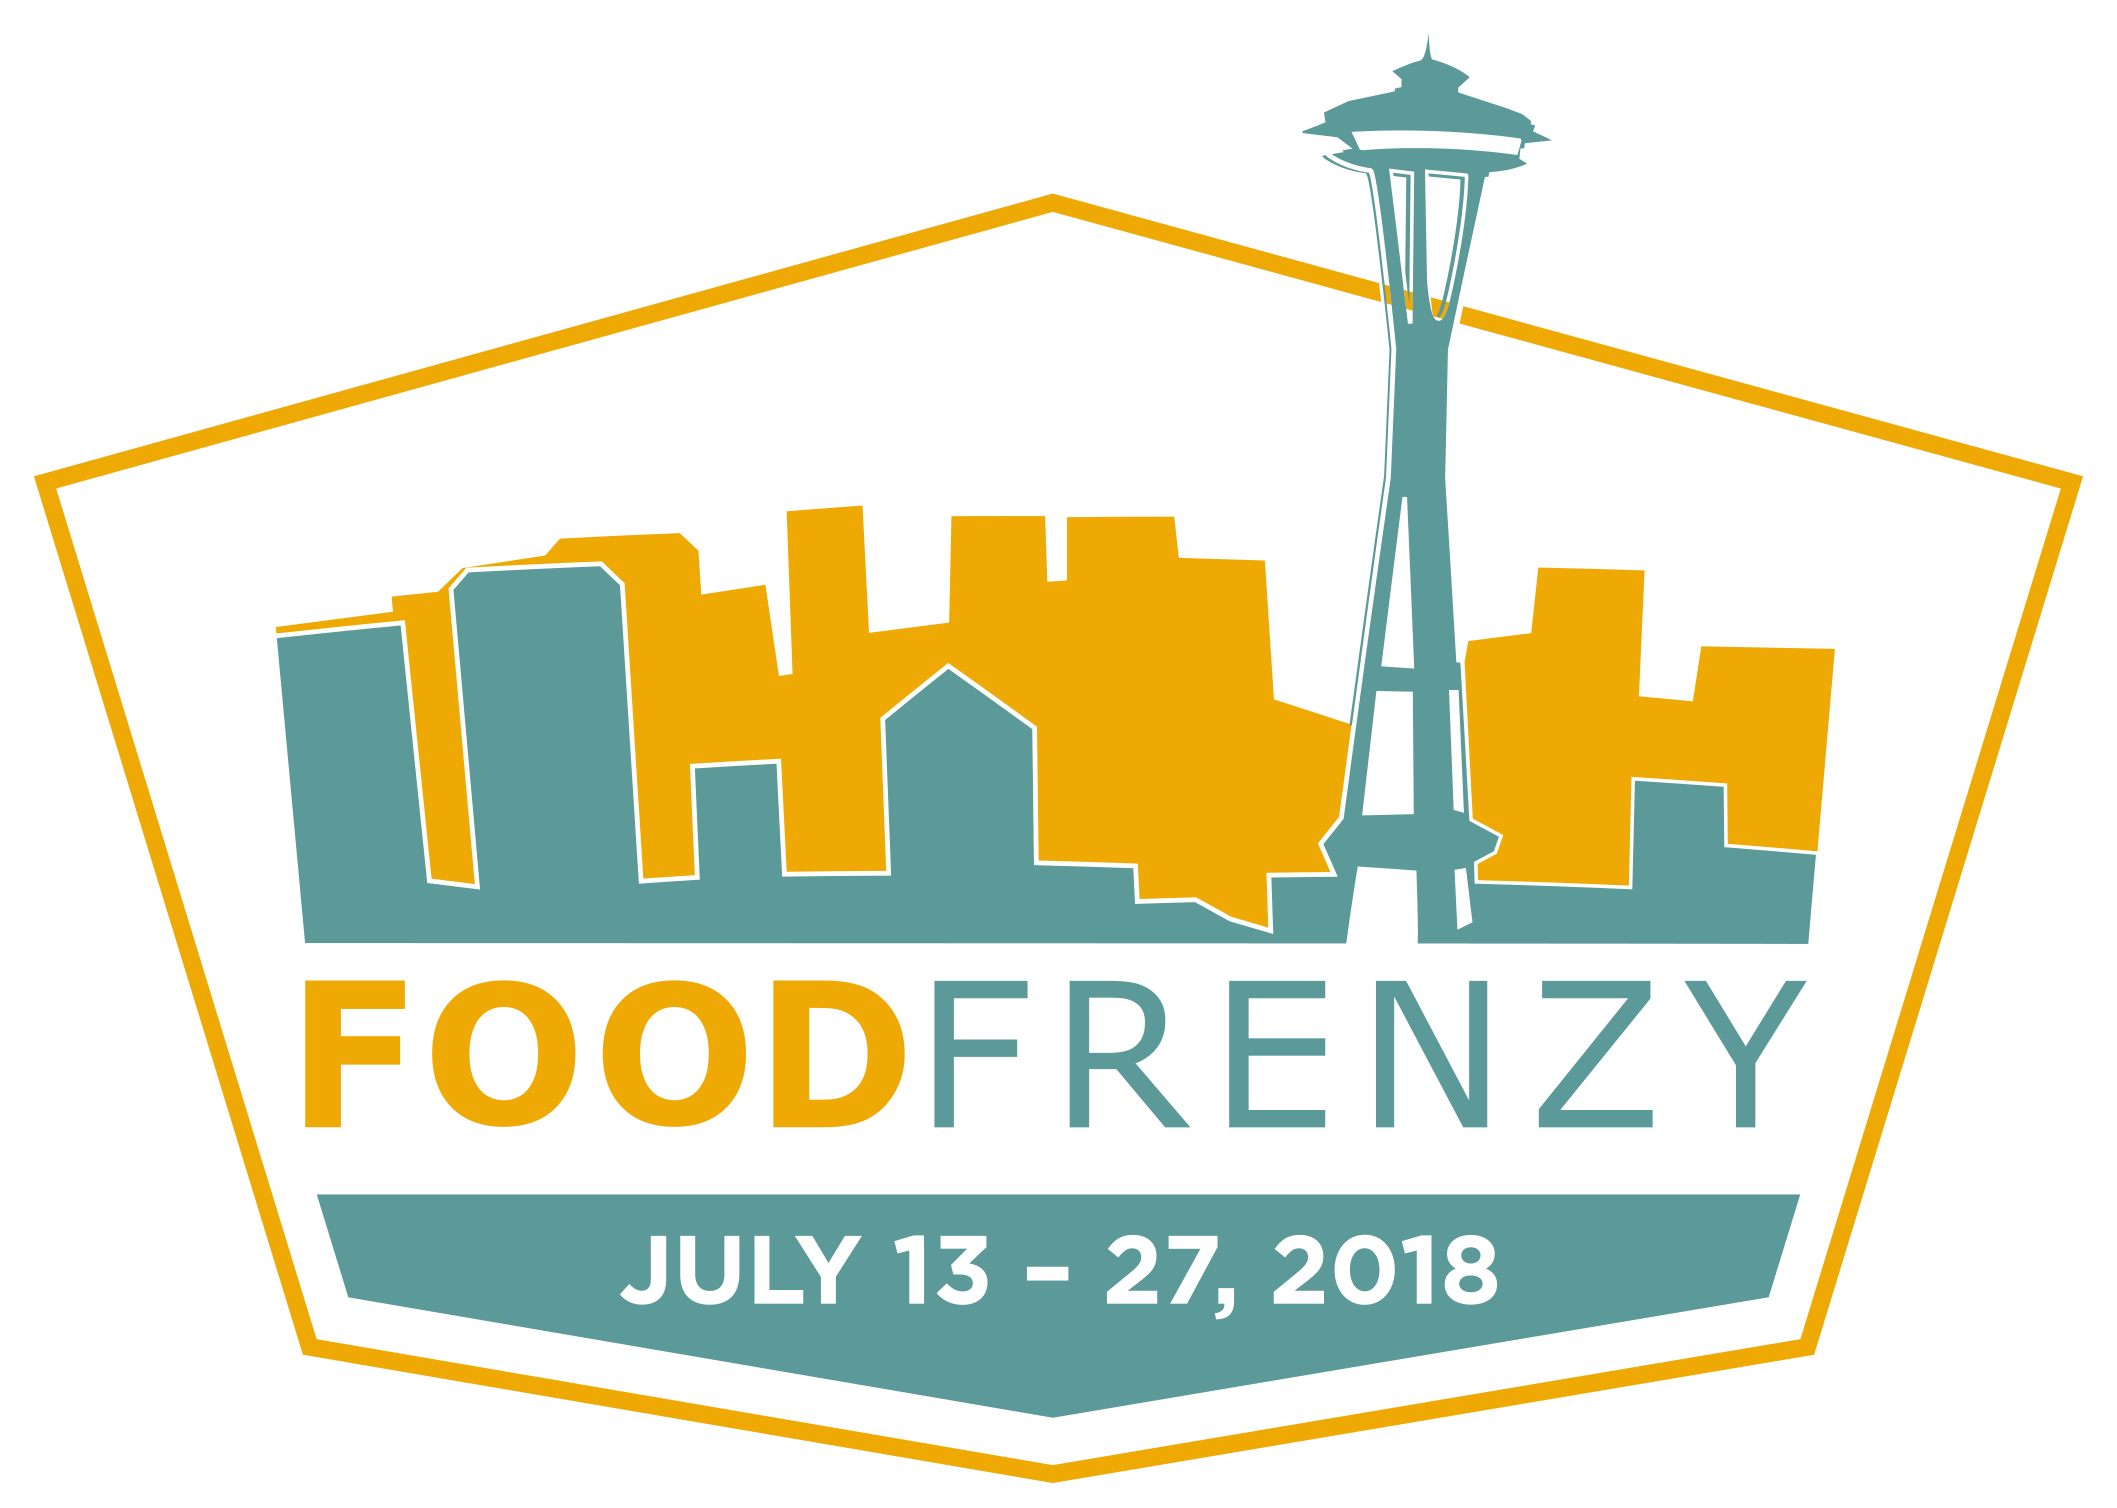 Food Frenzy Logo